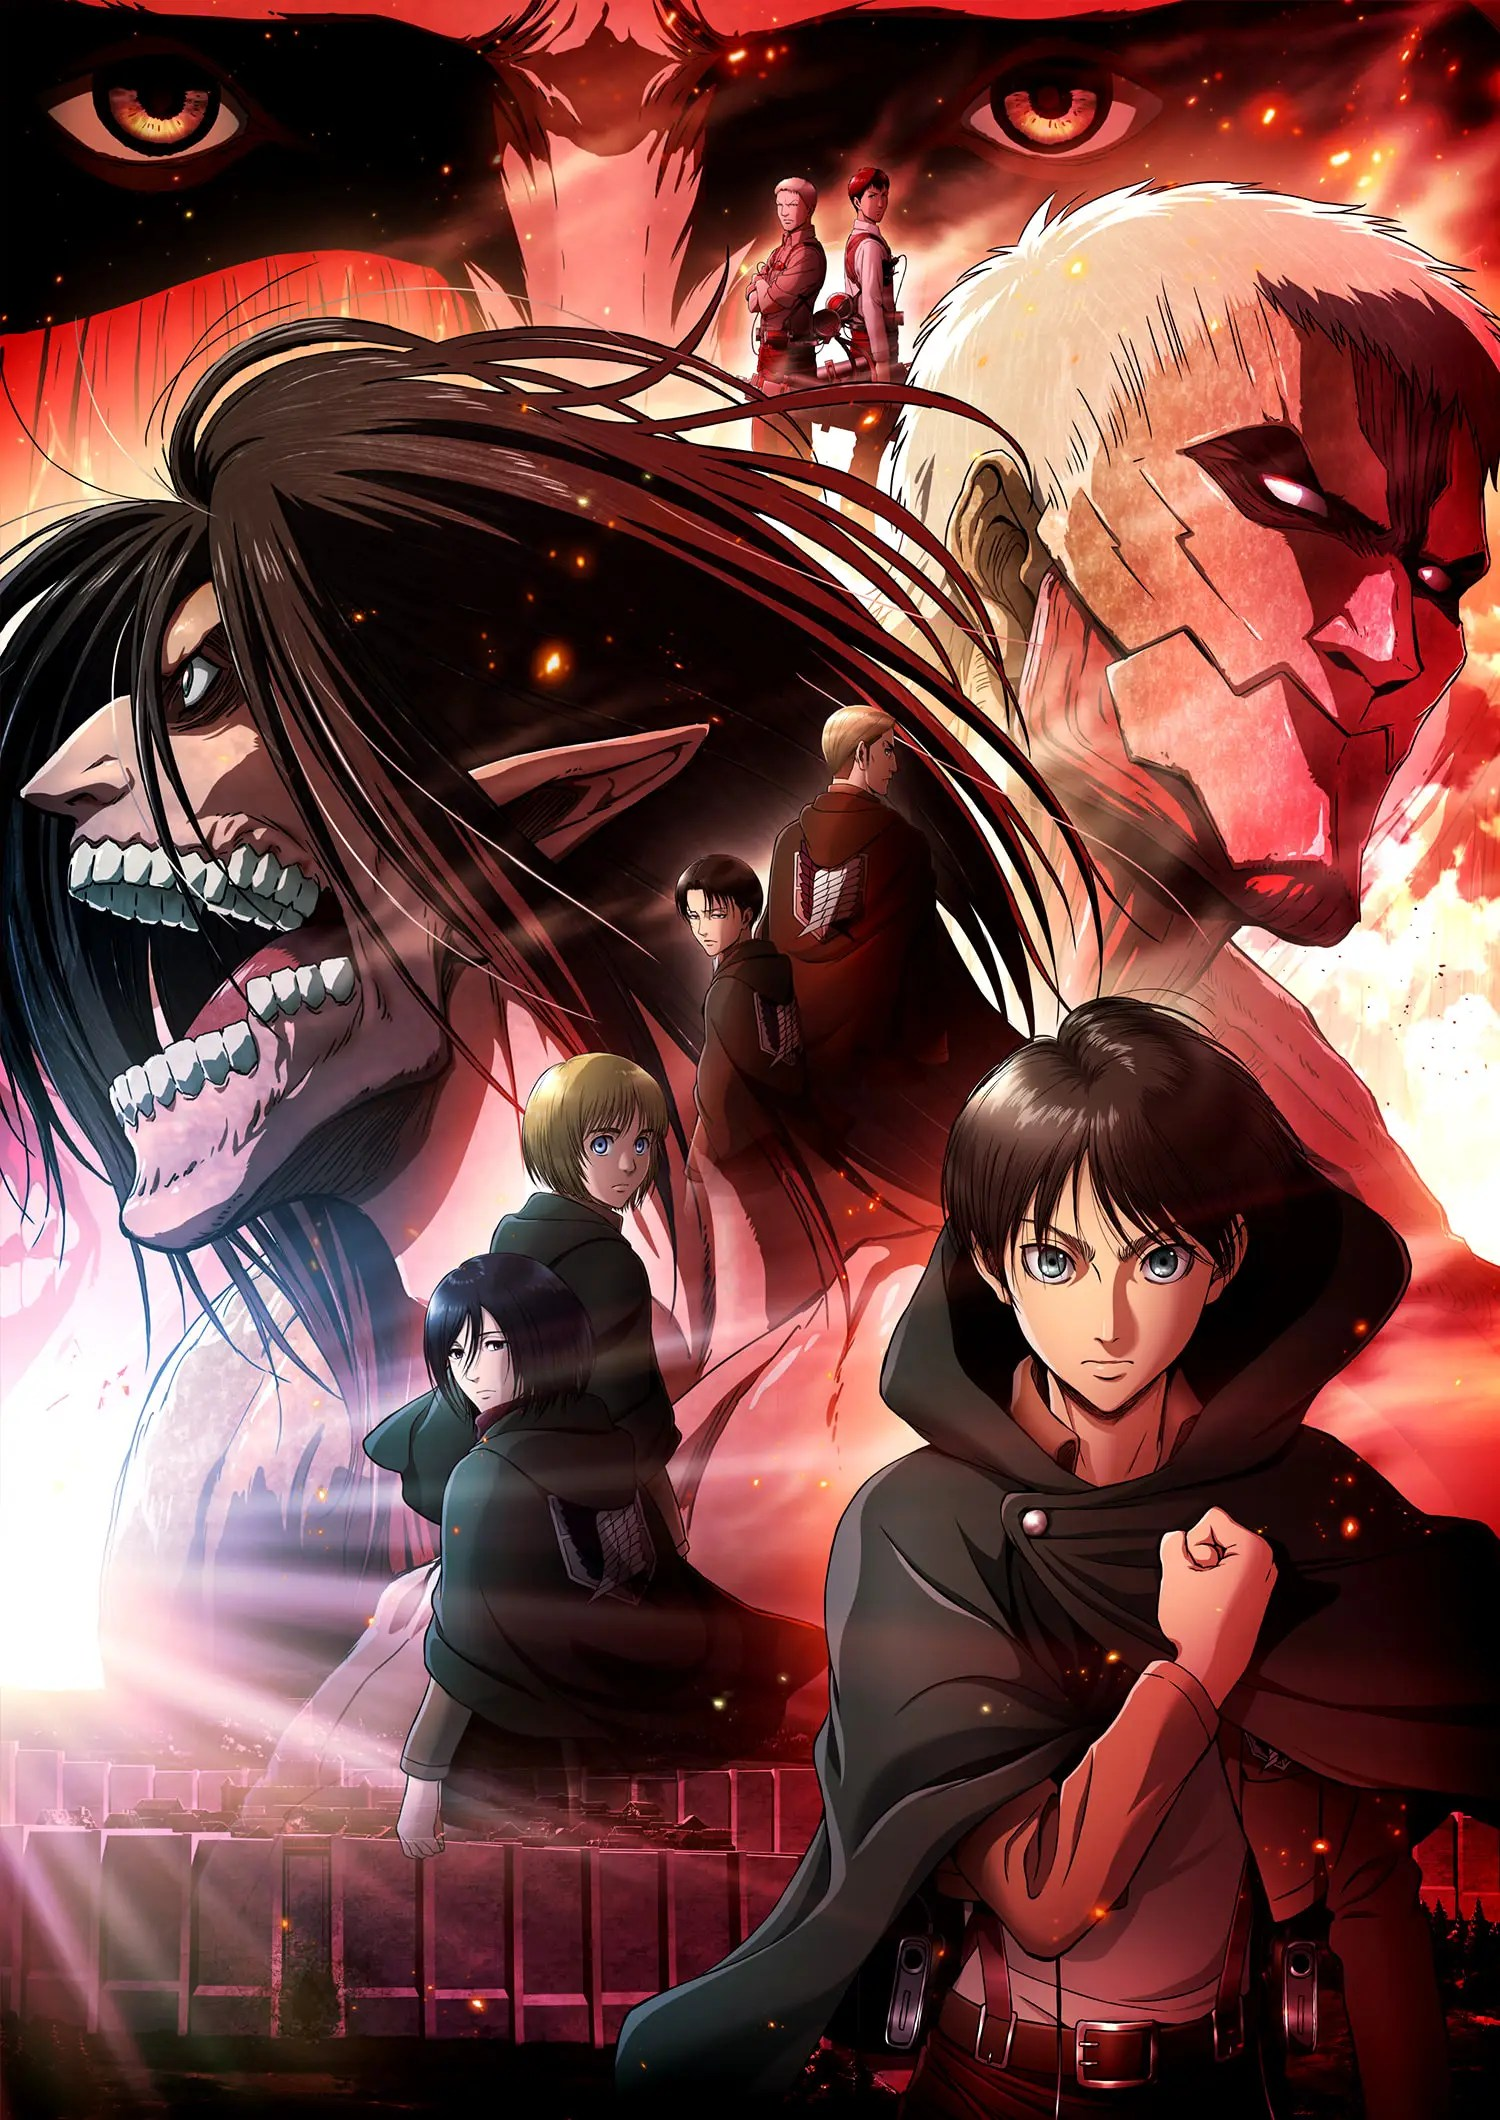 Visuel clé pour le film d'animation Shingeki no Kyojin Chronicle